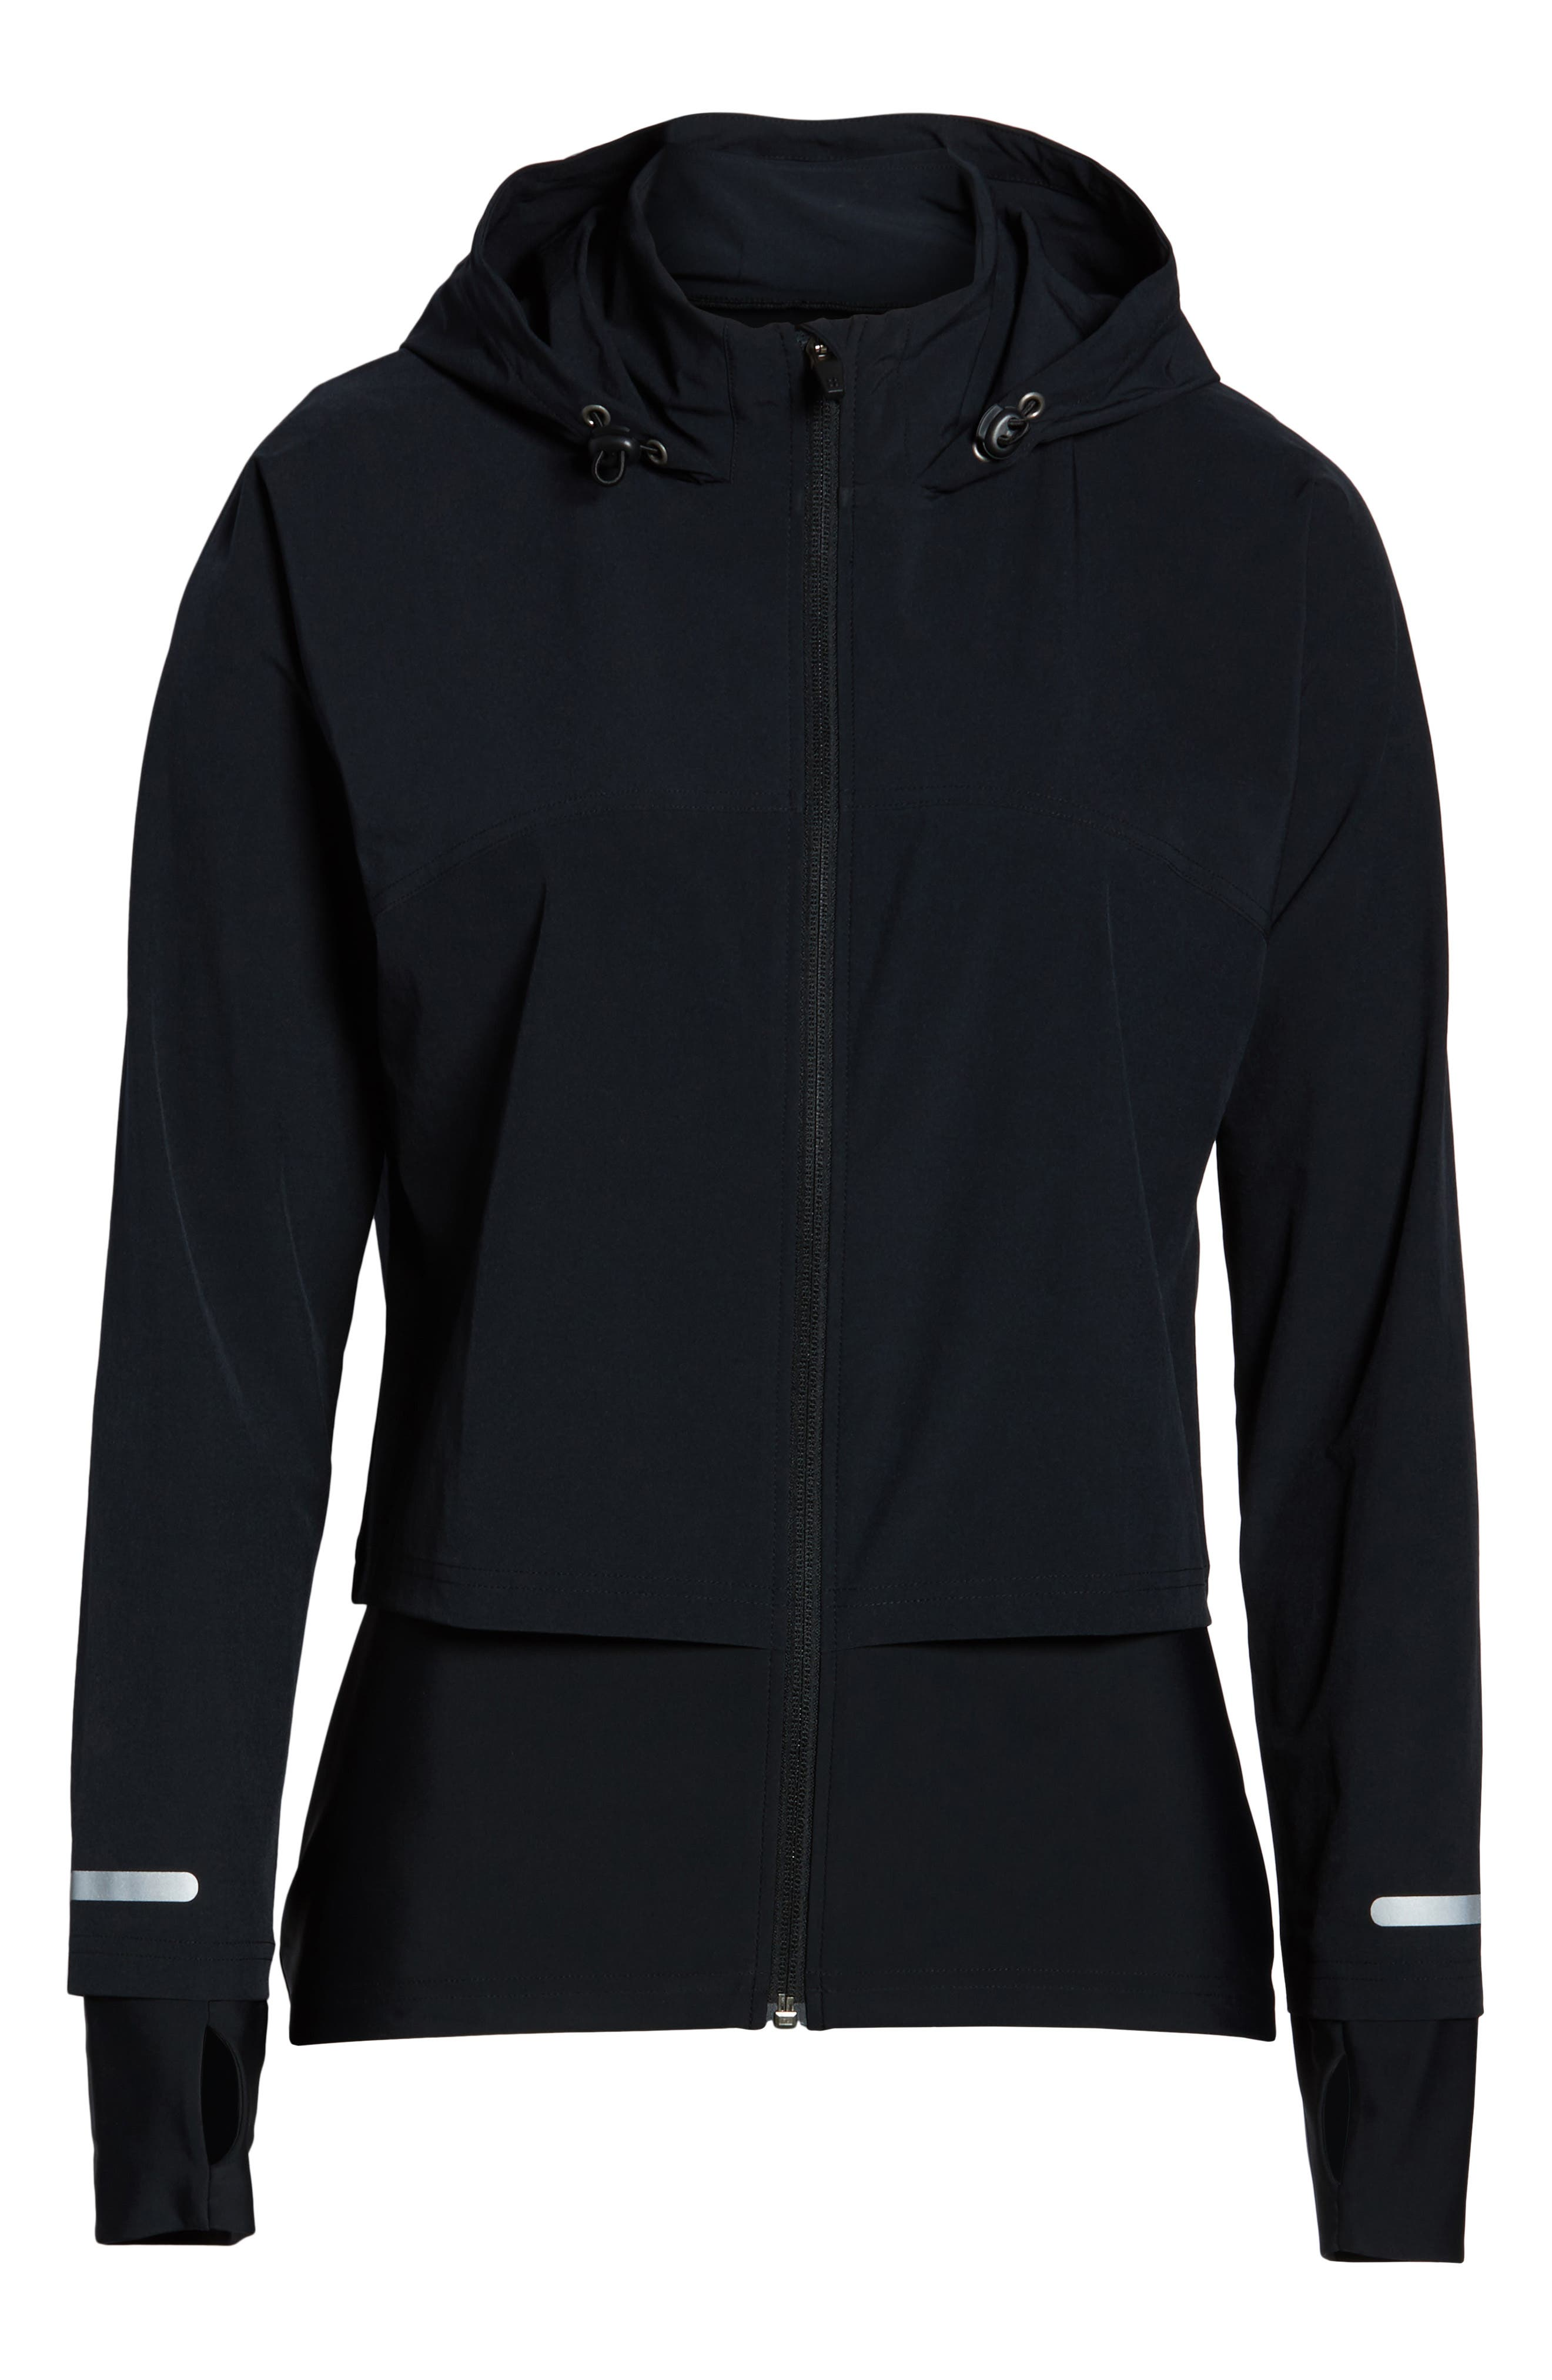 Fast Track Jacket,                             Alternate thumbnail 6, color,                             BLACK